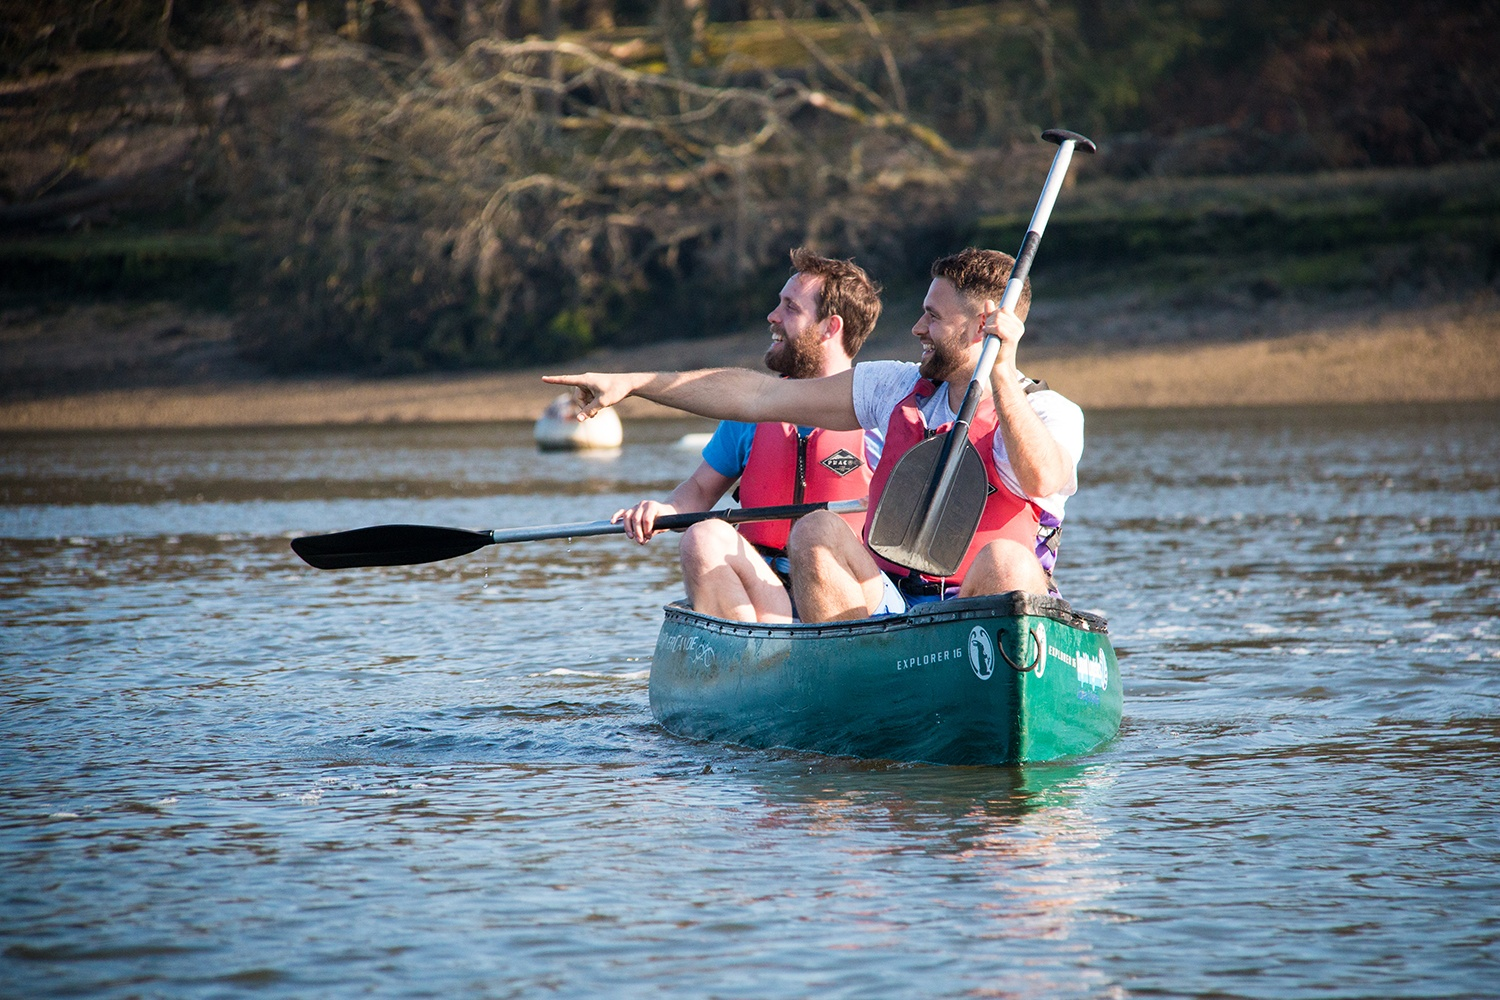 Family Canoeing on the Beaulieu River.